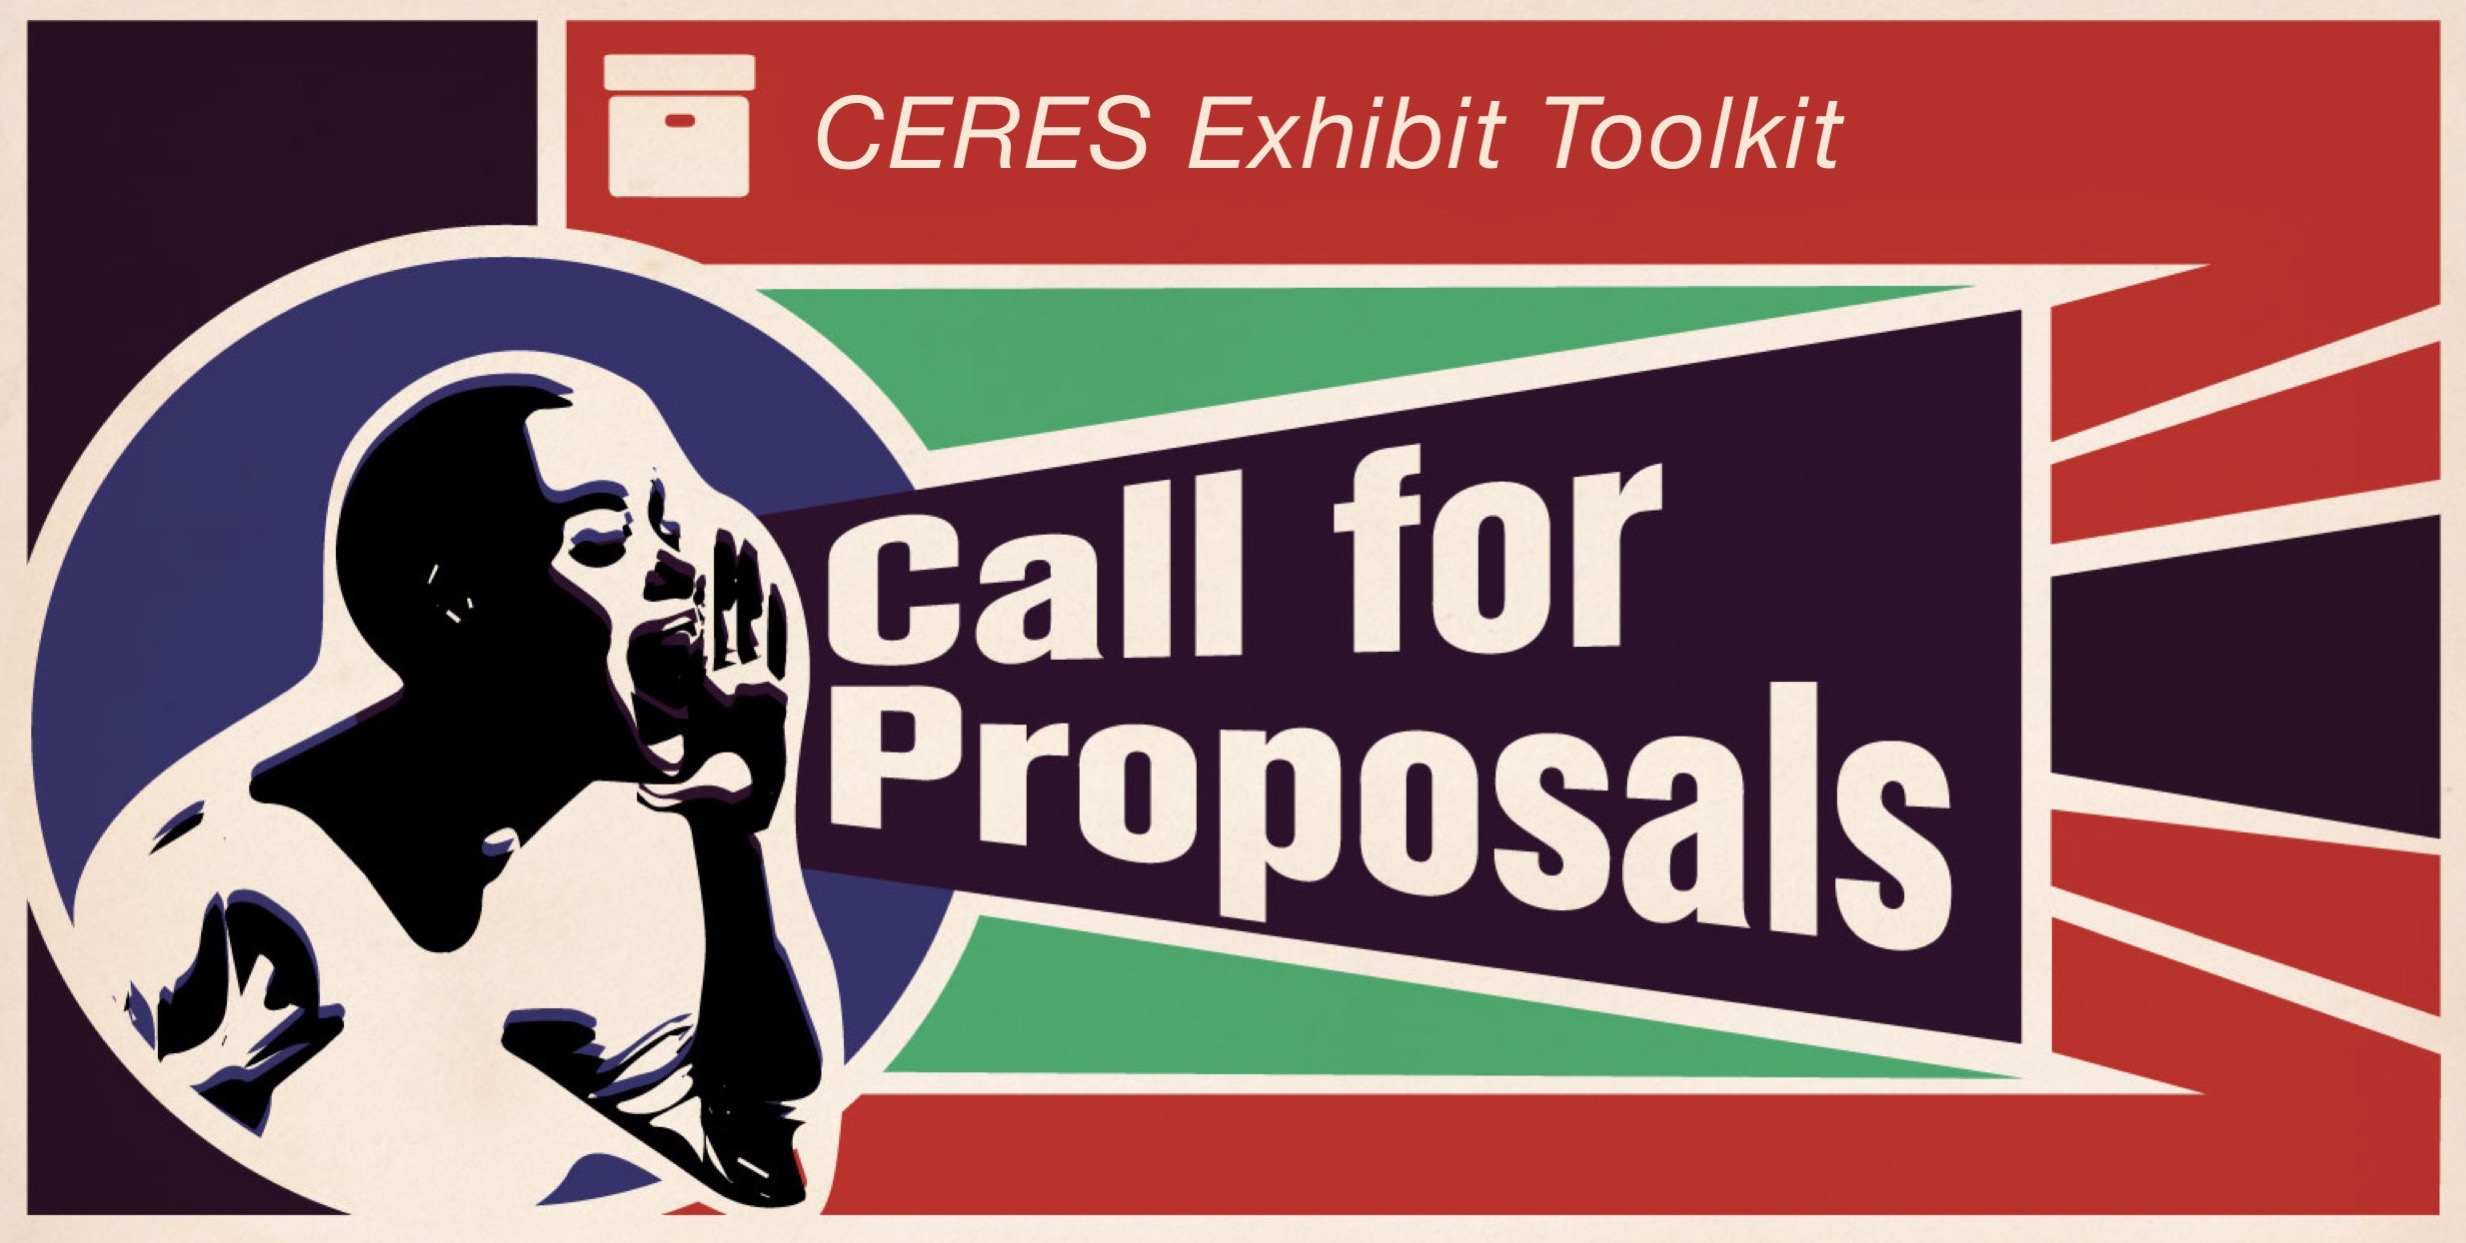 CERES Exhibit Toolkit Call for Proposals